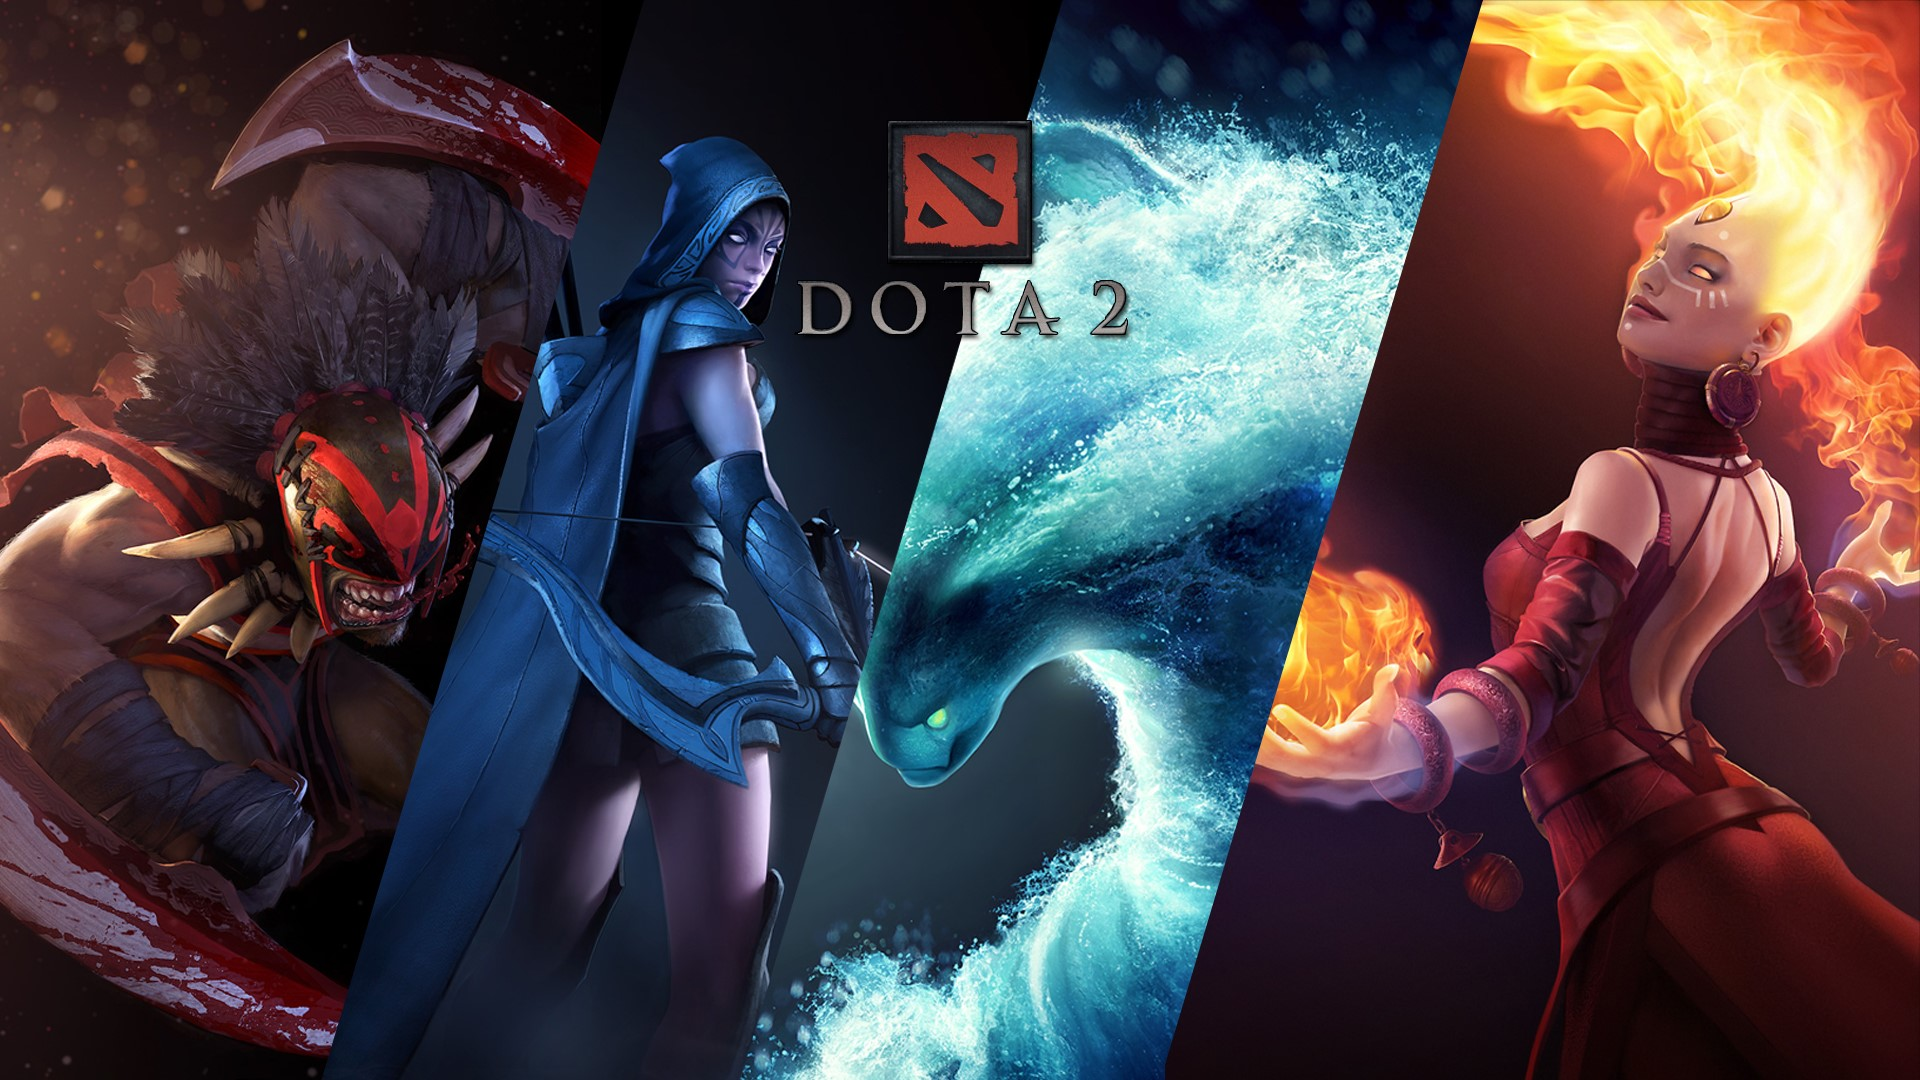 DOTA 2 | from 2000 to 3000 ranking